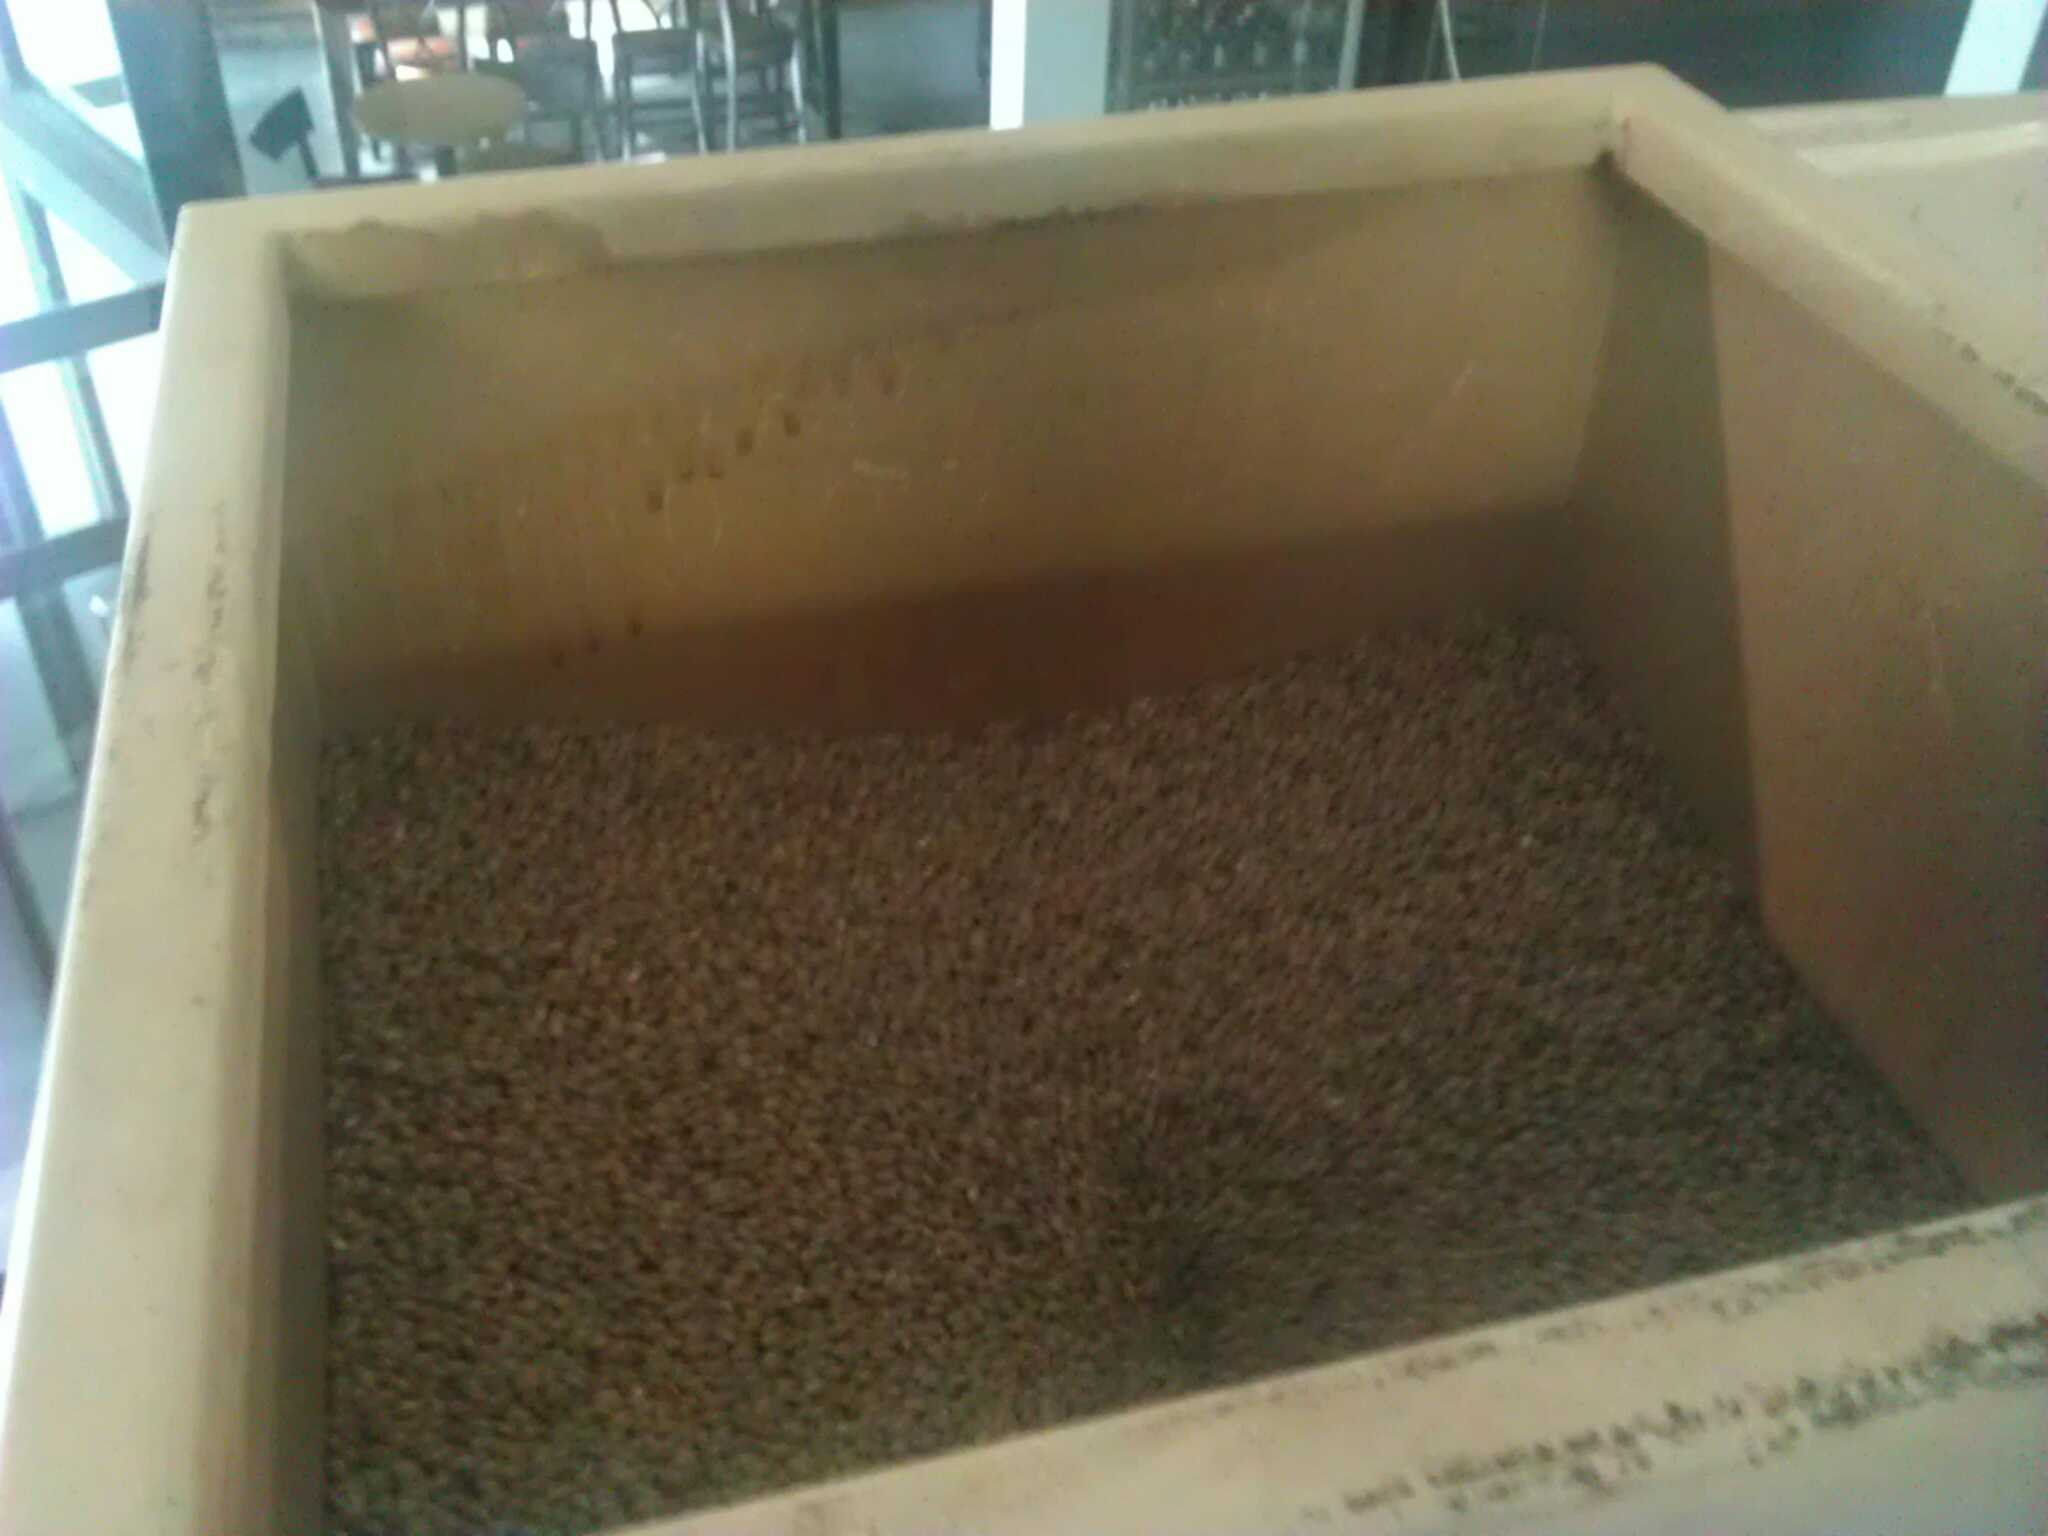 Freshly milled grain is one of those healthy smells that I think we're all sort of programmed to recognize.